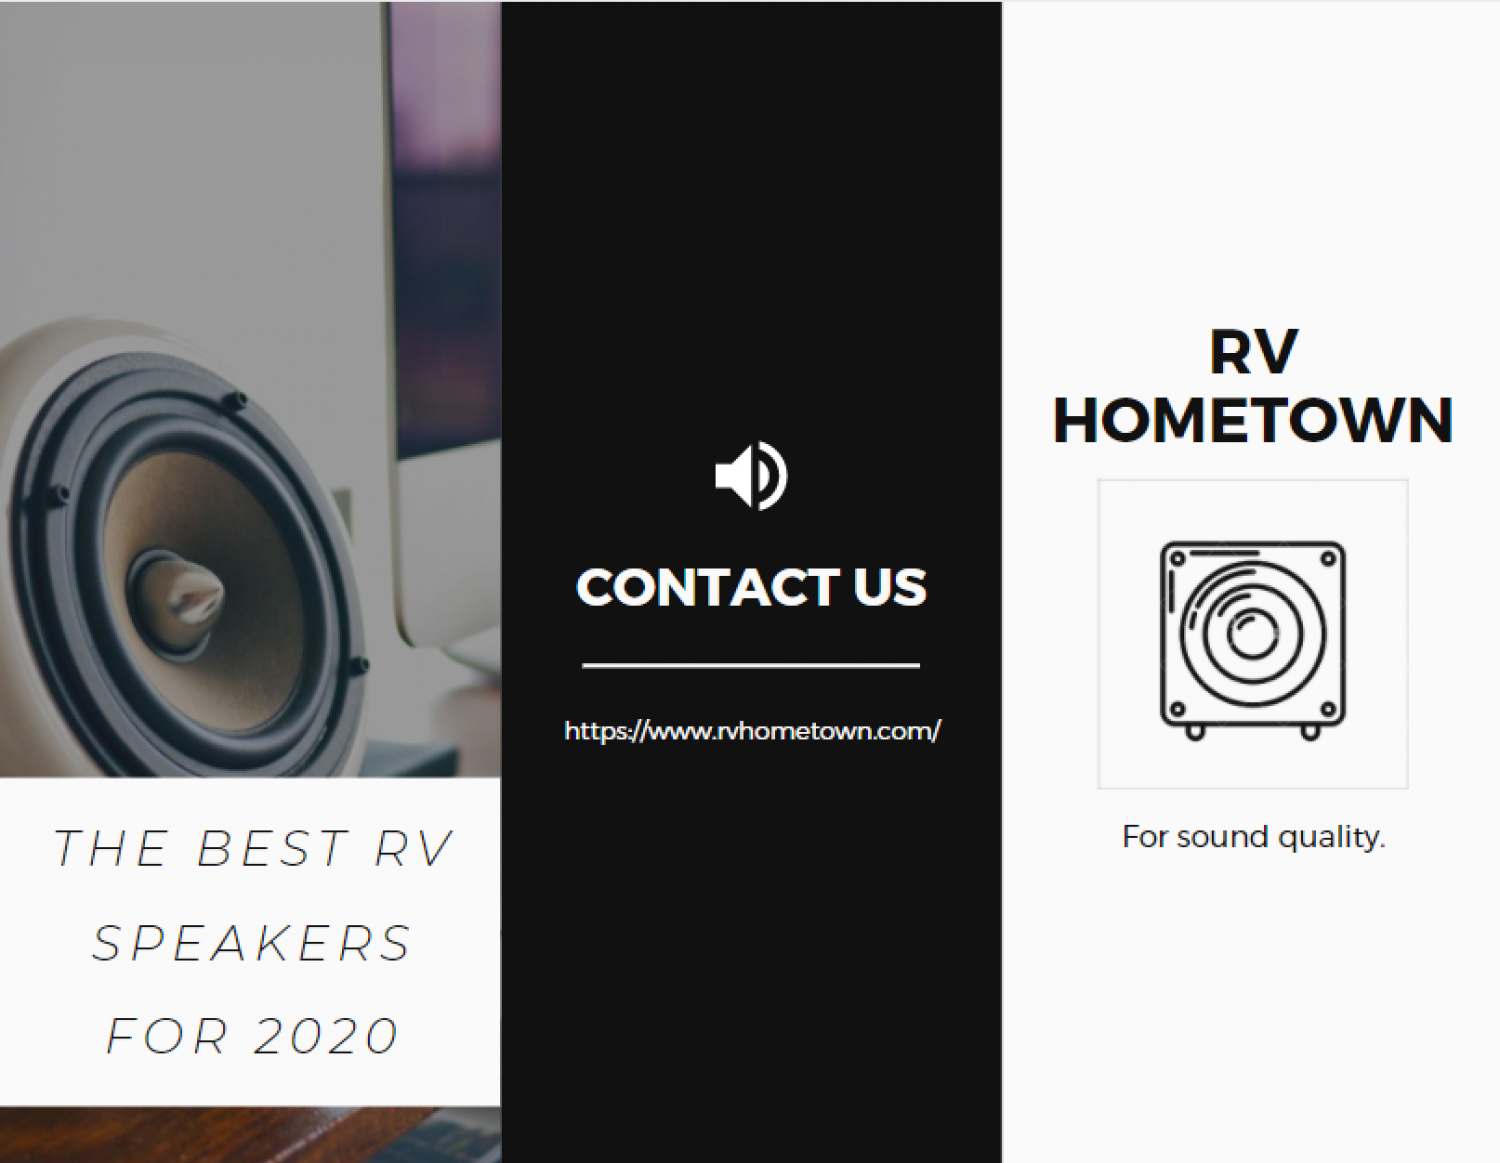 The Best RV Speakers for 2020 Infographic